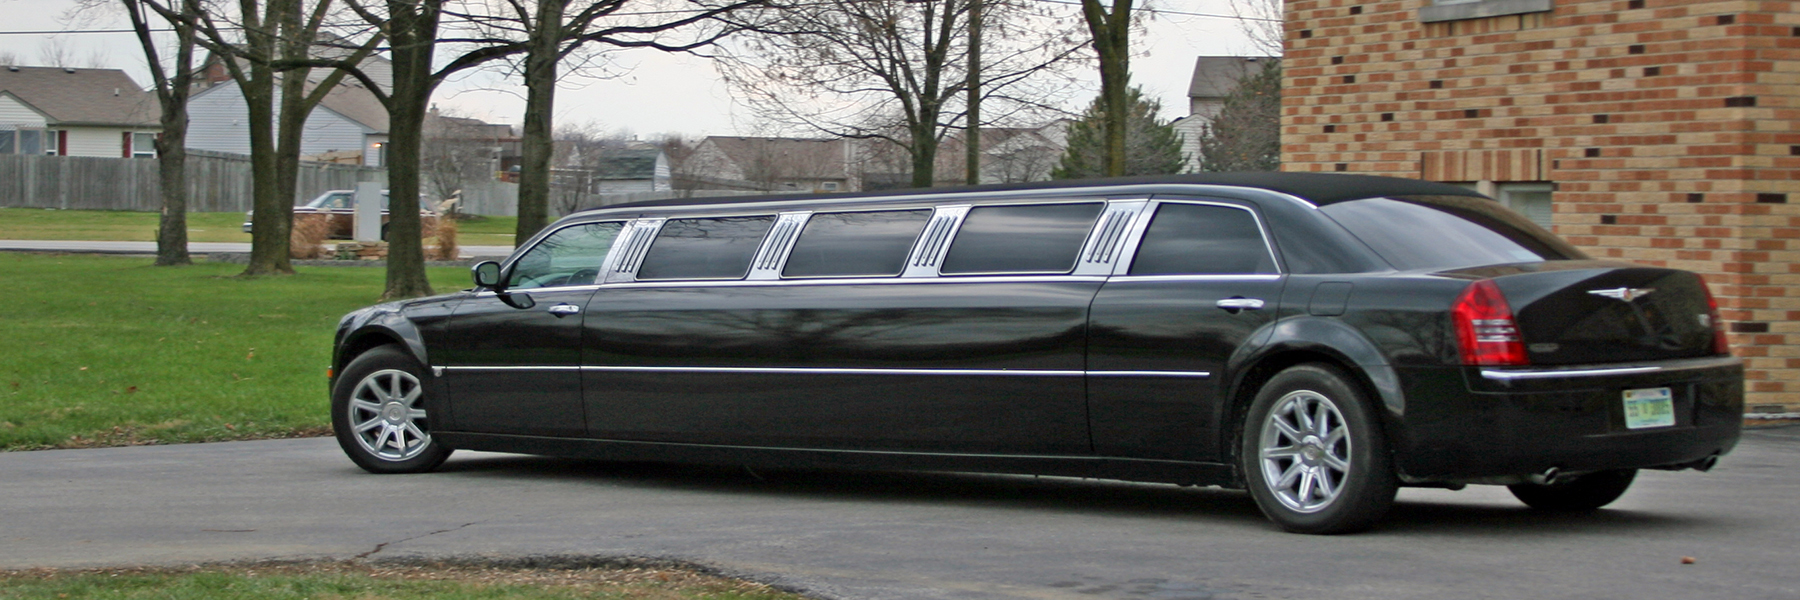 Limousine Rental Fleet